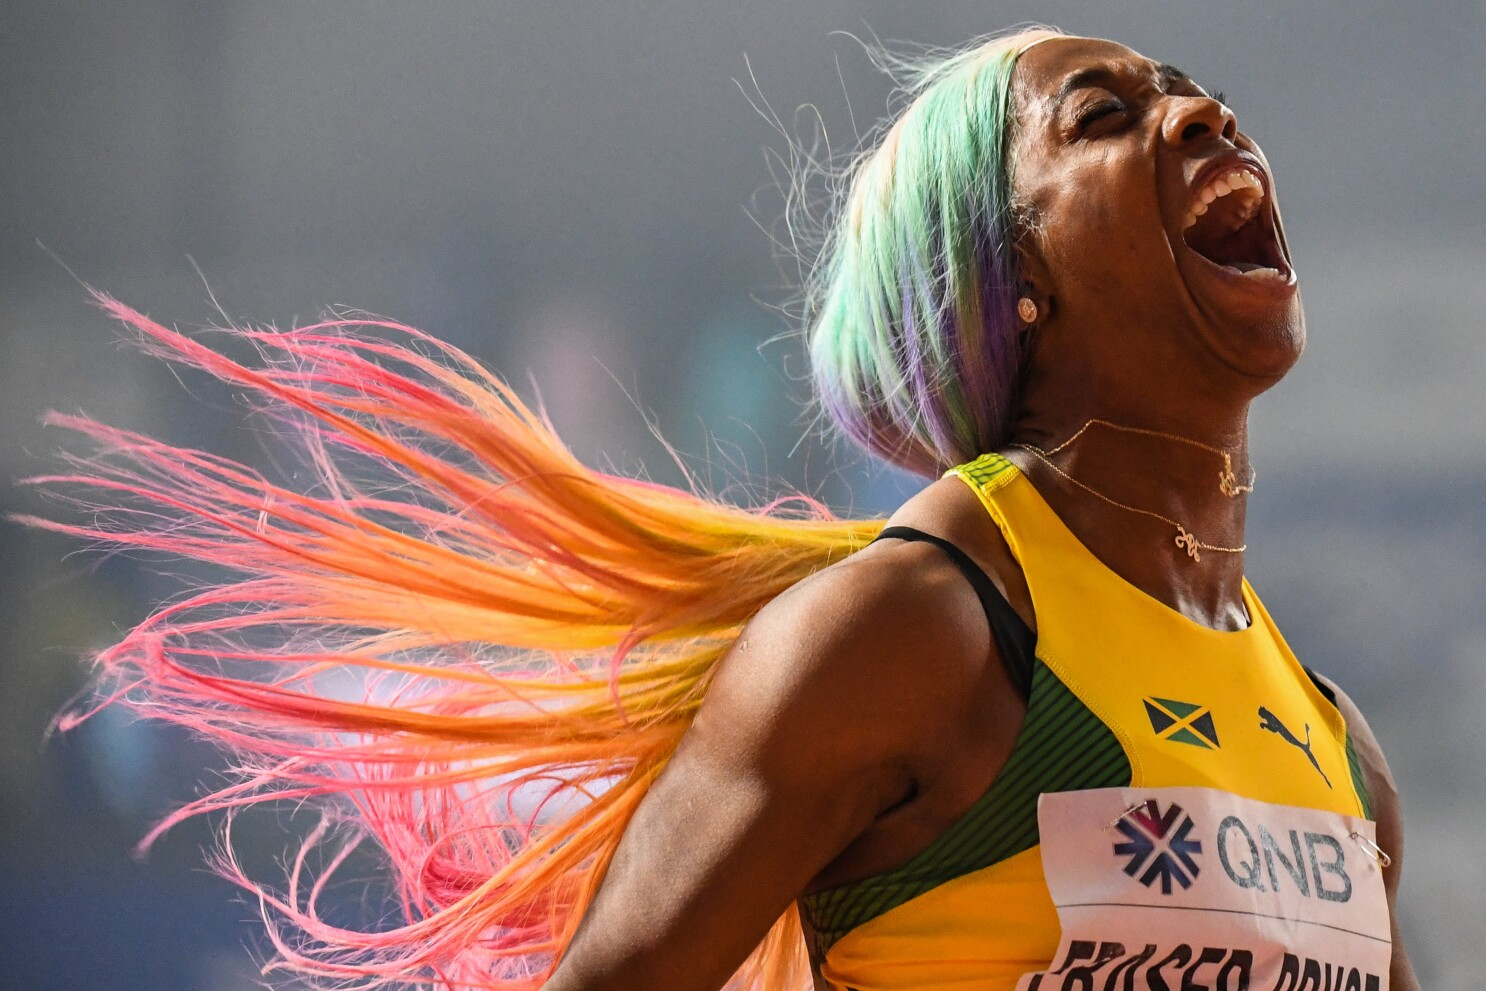 Allyson Is Watching shelly-ann fraser-pryce and allyson felix celebrate wins for